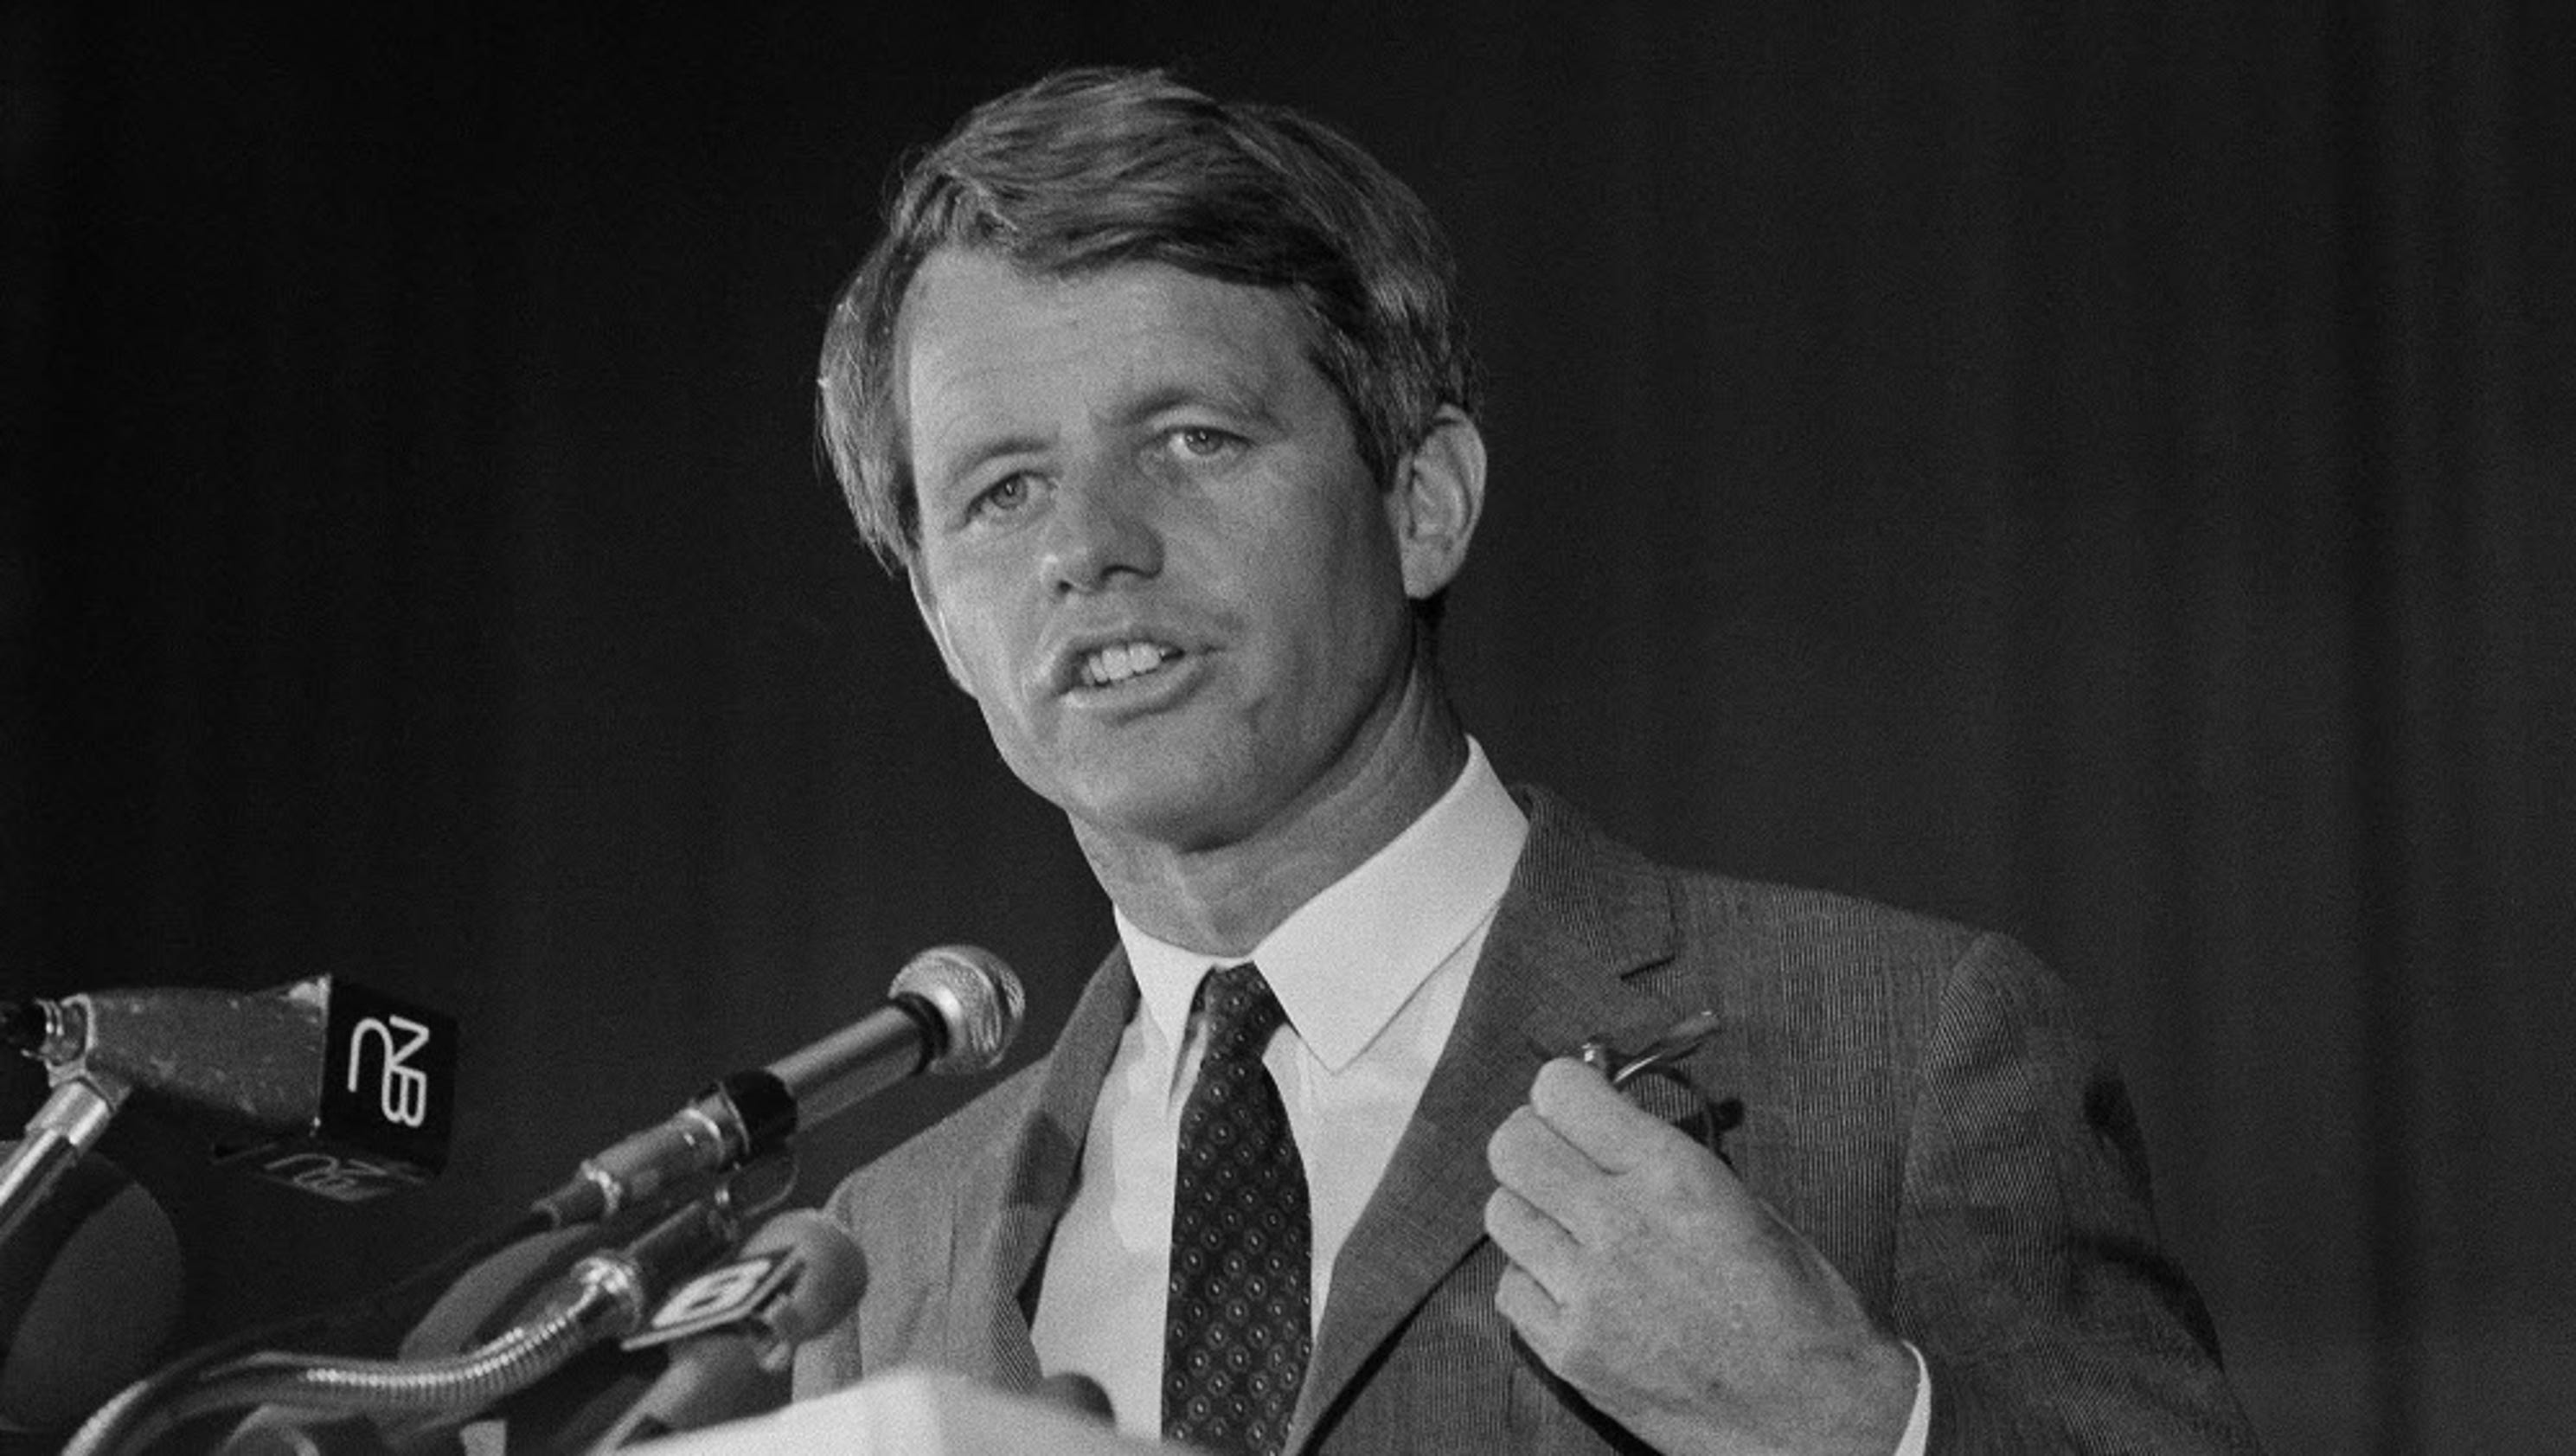 essay on robert f kennedy Robert f kennedy's 1968 campaign for president, launched fifty years ago this  spring, holds a special place in the hearts of many progressives.